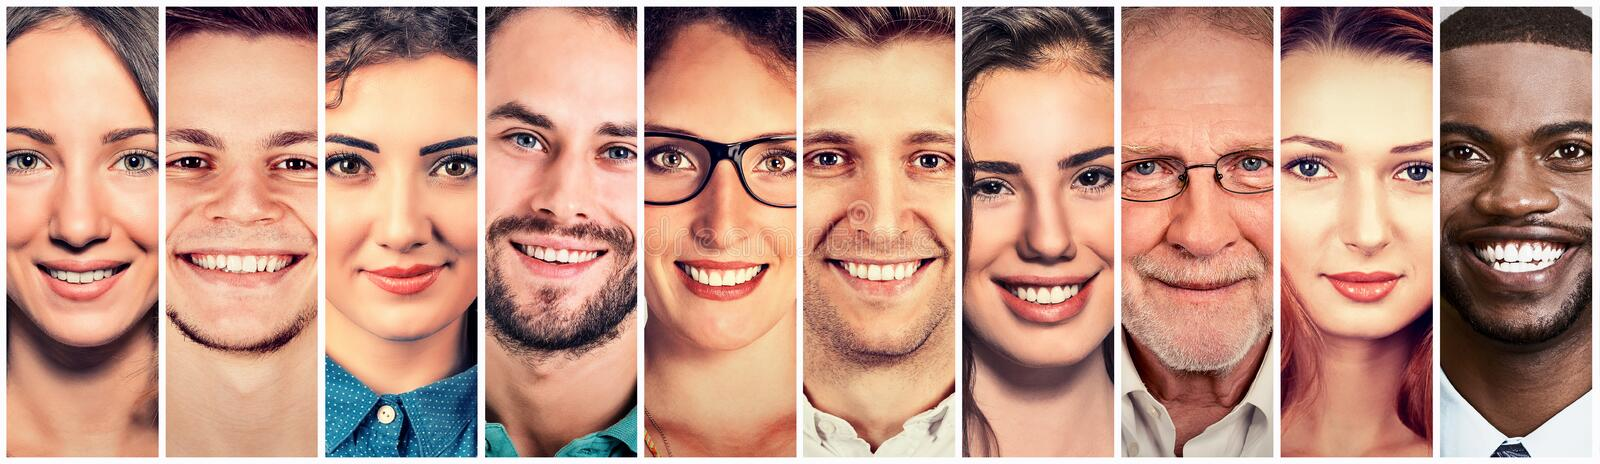 Happy group of multiethnic people men and women royalty free stock image